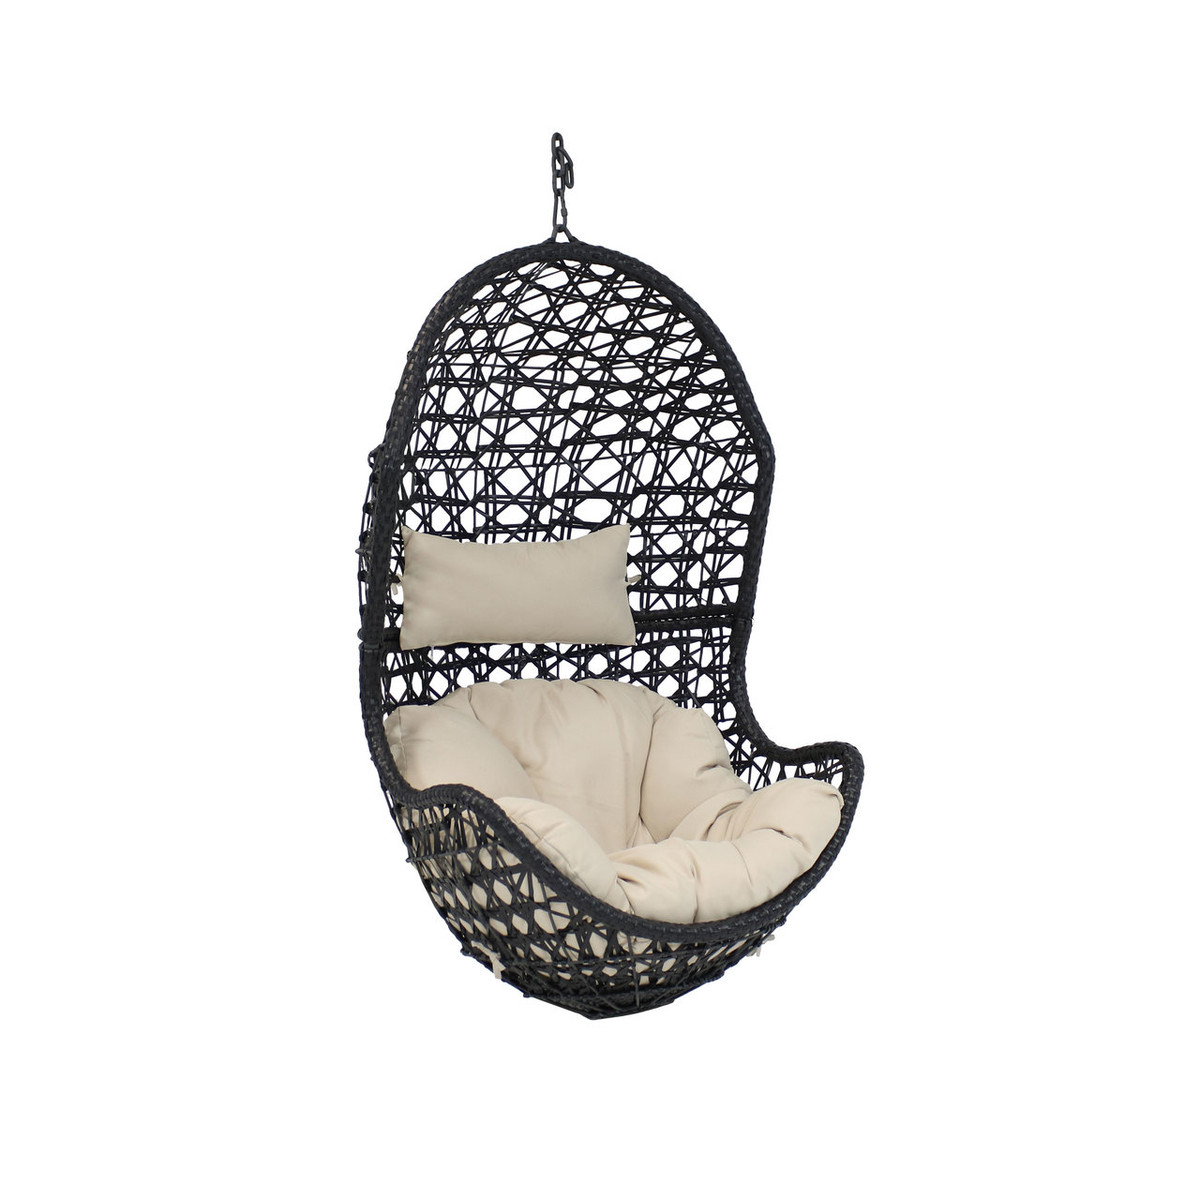 Astonishing Sunnydaze Cordelia Hanging Egg Chair Resin Wicker Large Caraccident5 Cool Chair Designs And Ideas Caraccident5Info